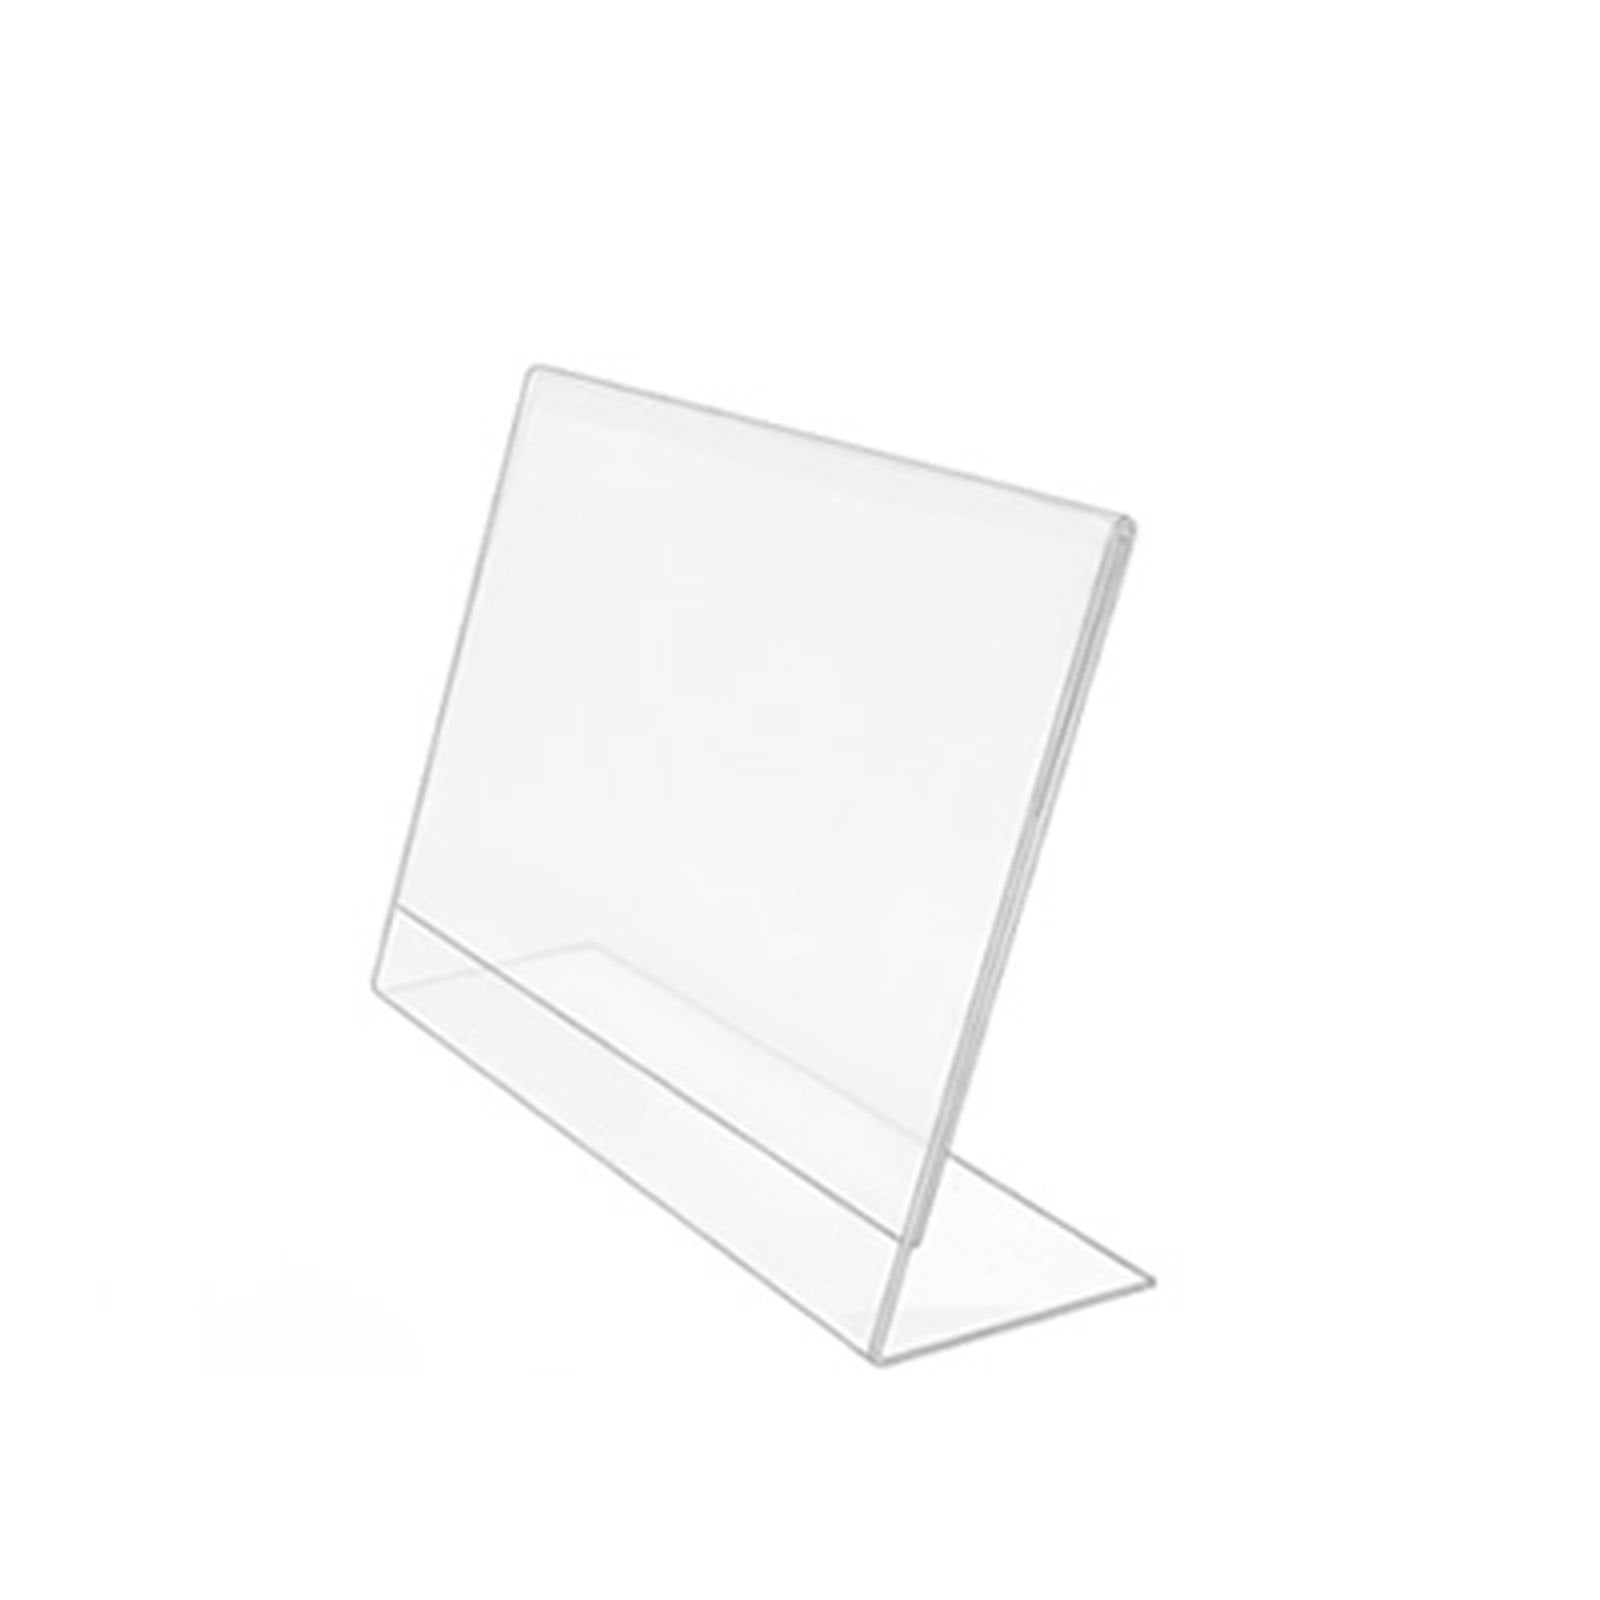 Poster Holder A4 Acrylic POS Leanback Display Landscape pack of 10